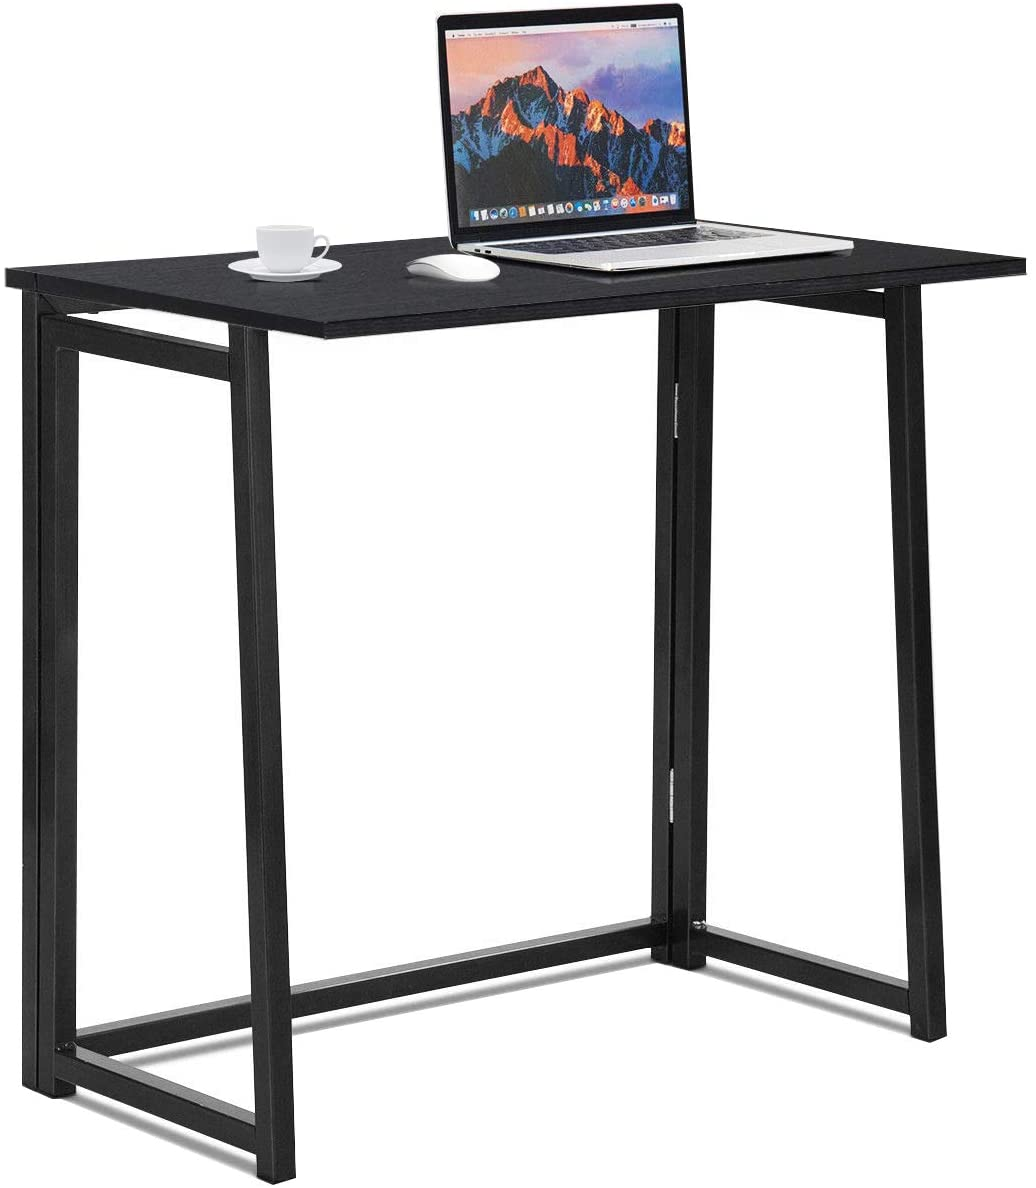 Tangkula Folding Desk, No Assembly Small Foldable Computer Desk, Home Office Laptop Table Writing Desk, Compact Study Reading Table for Small Space (Black)